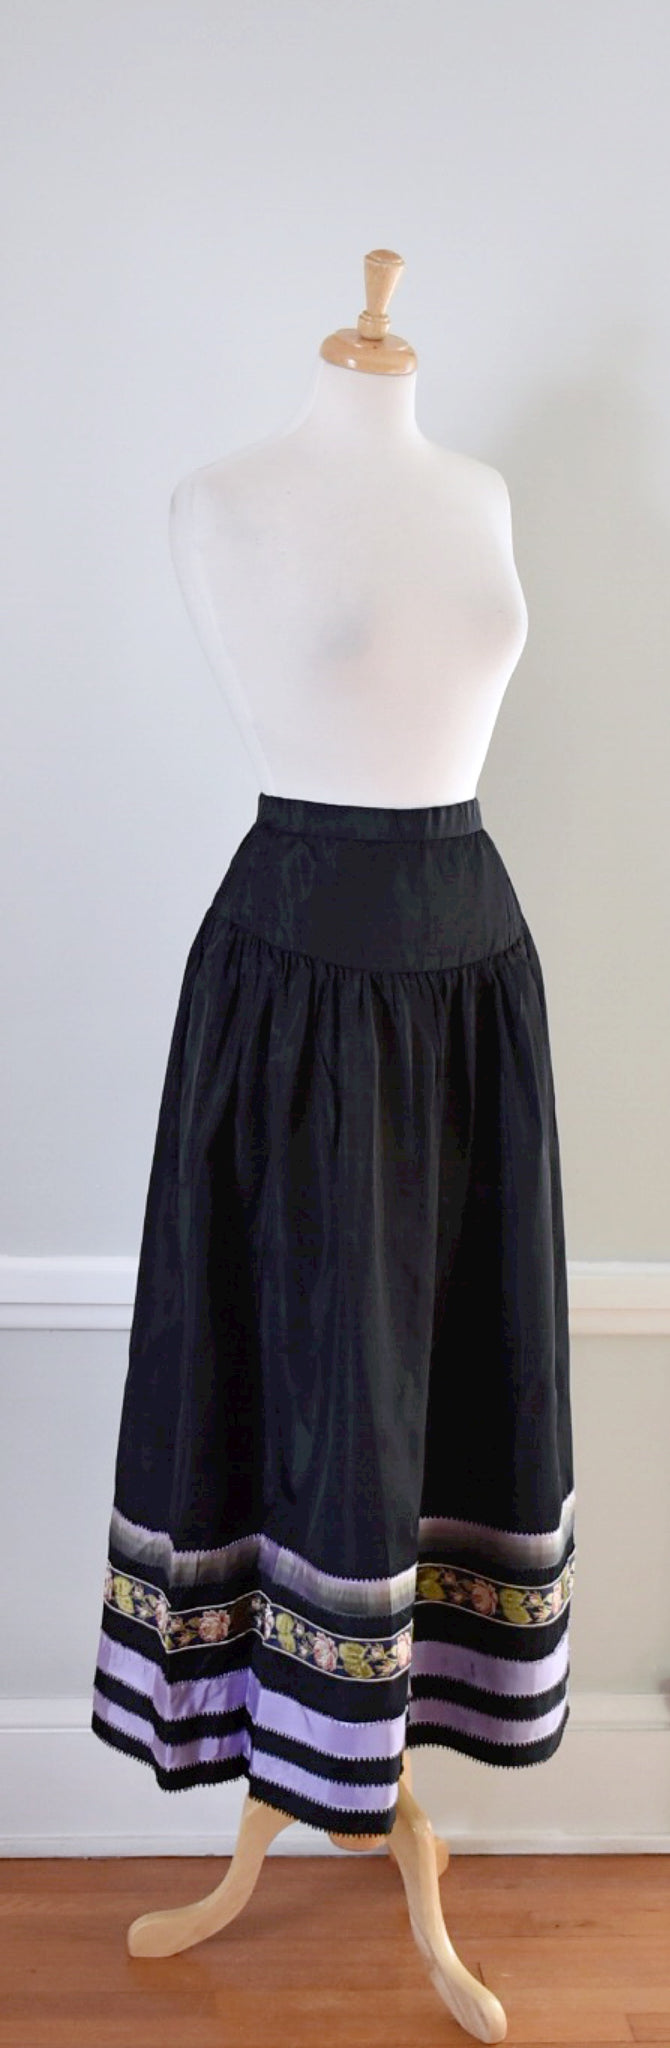 70s Vintage Drop Waist Satin Skirt